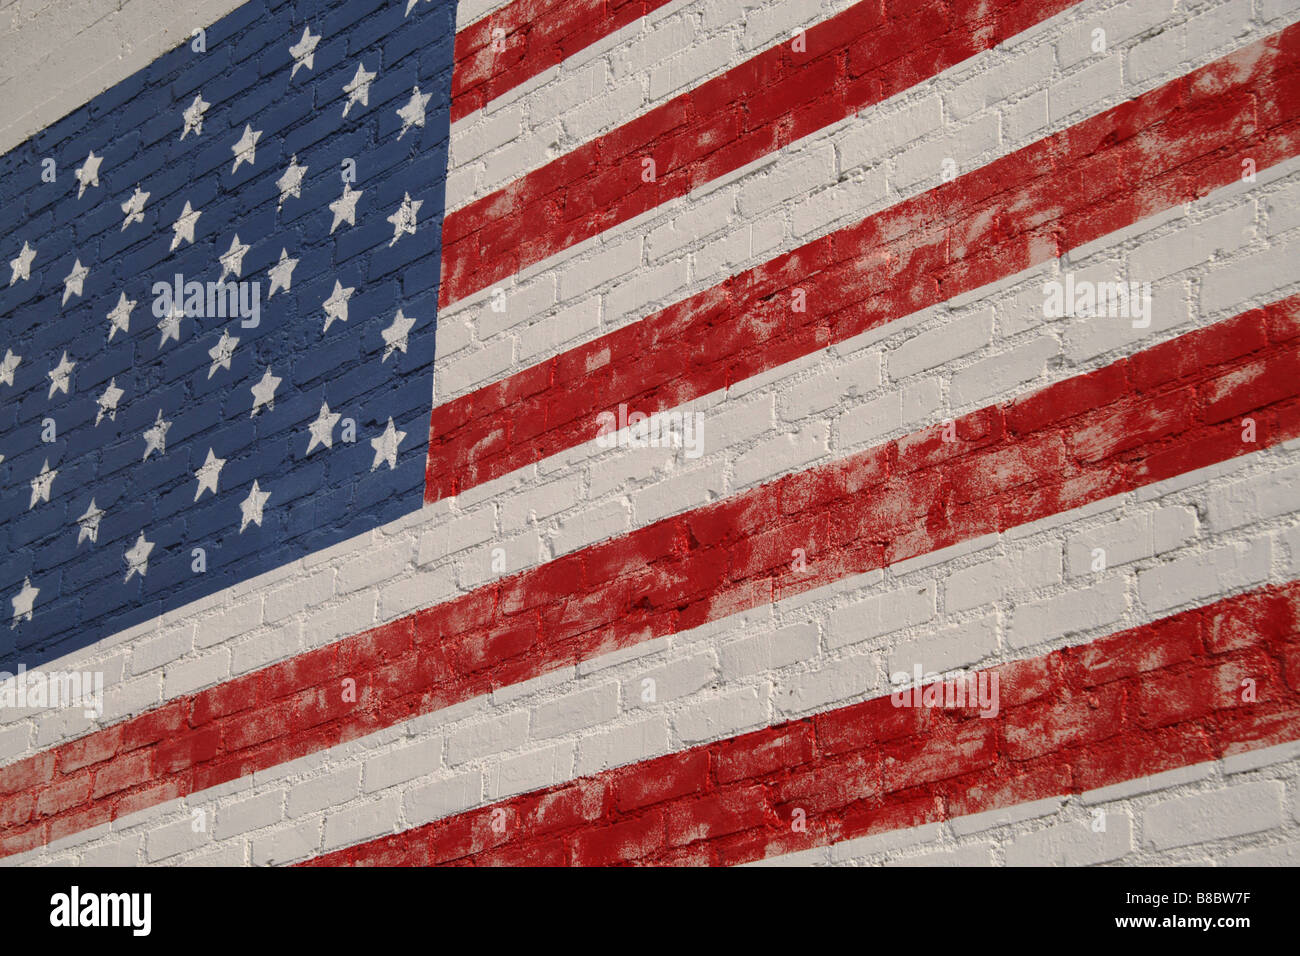 American Flag in faded paint on exterior wall - Stock Image